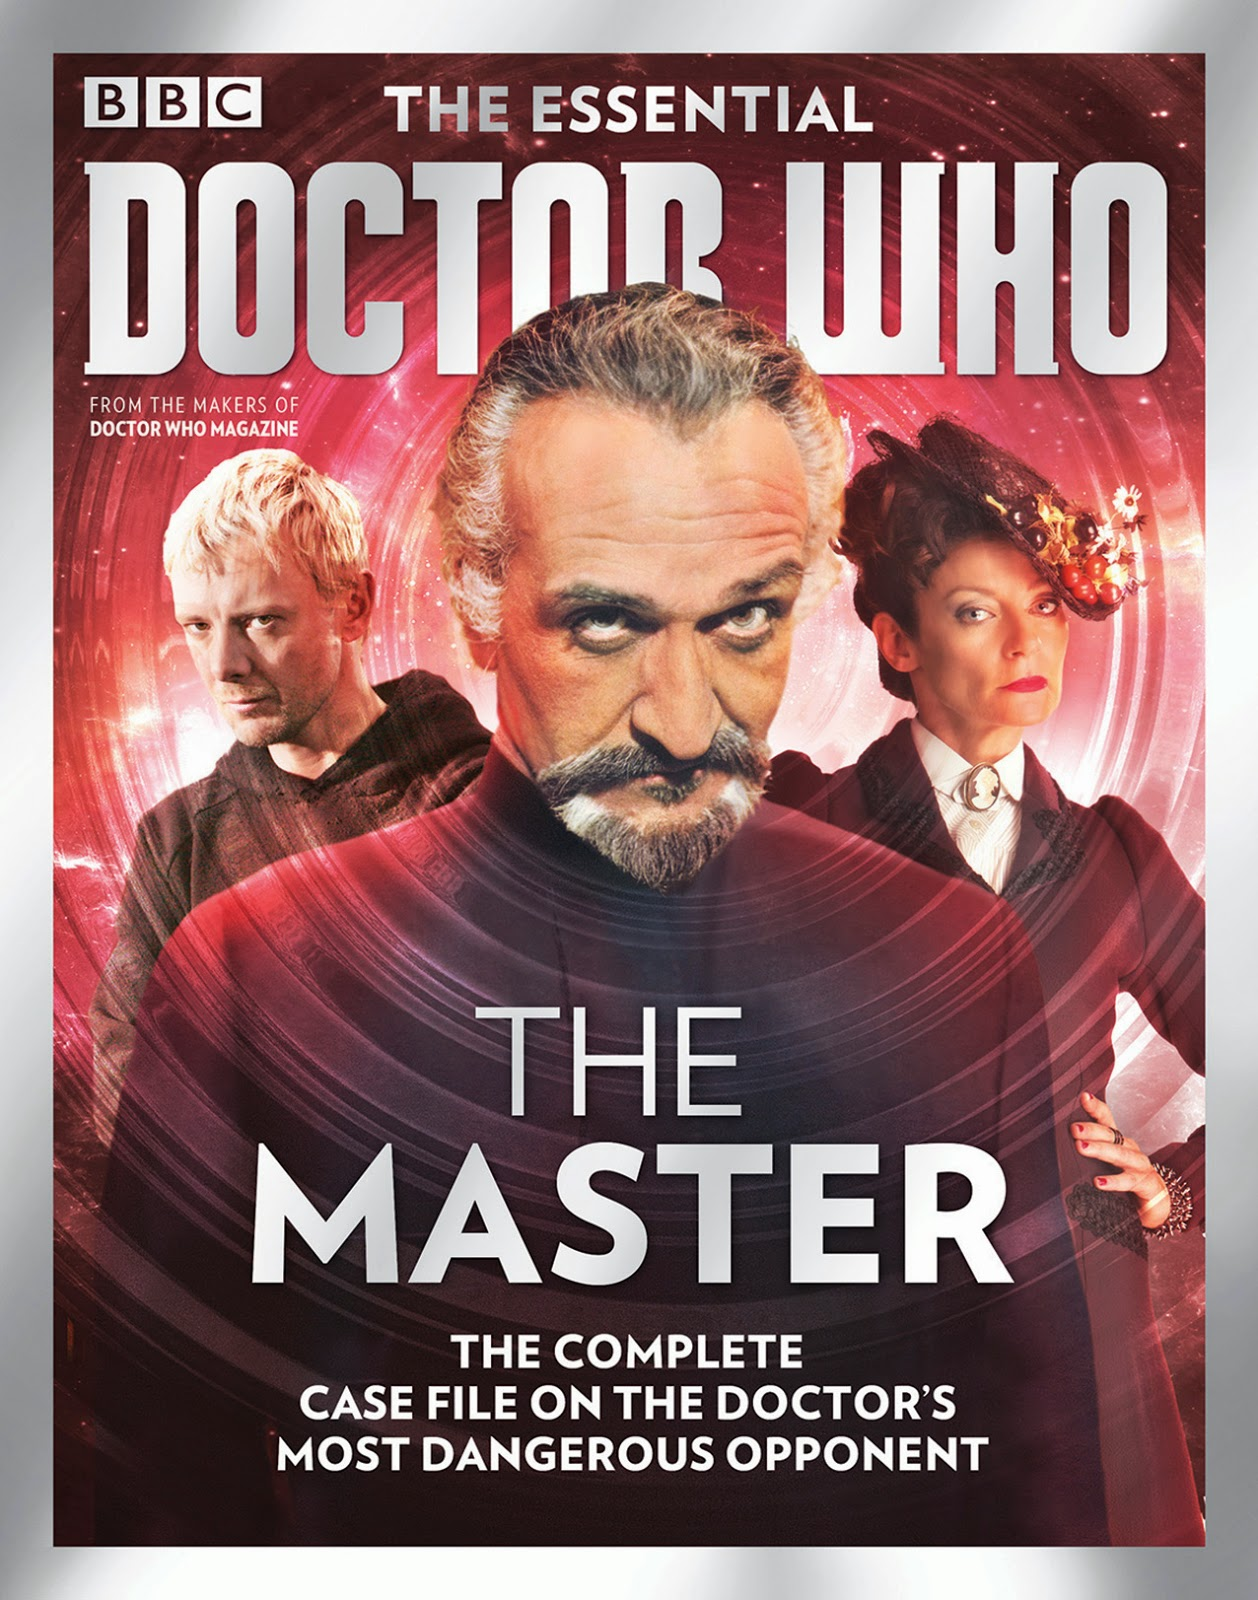 Blogtor Who: The Essential Doctor Who: The Master